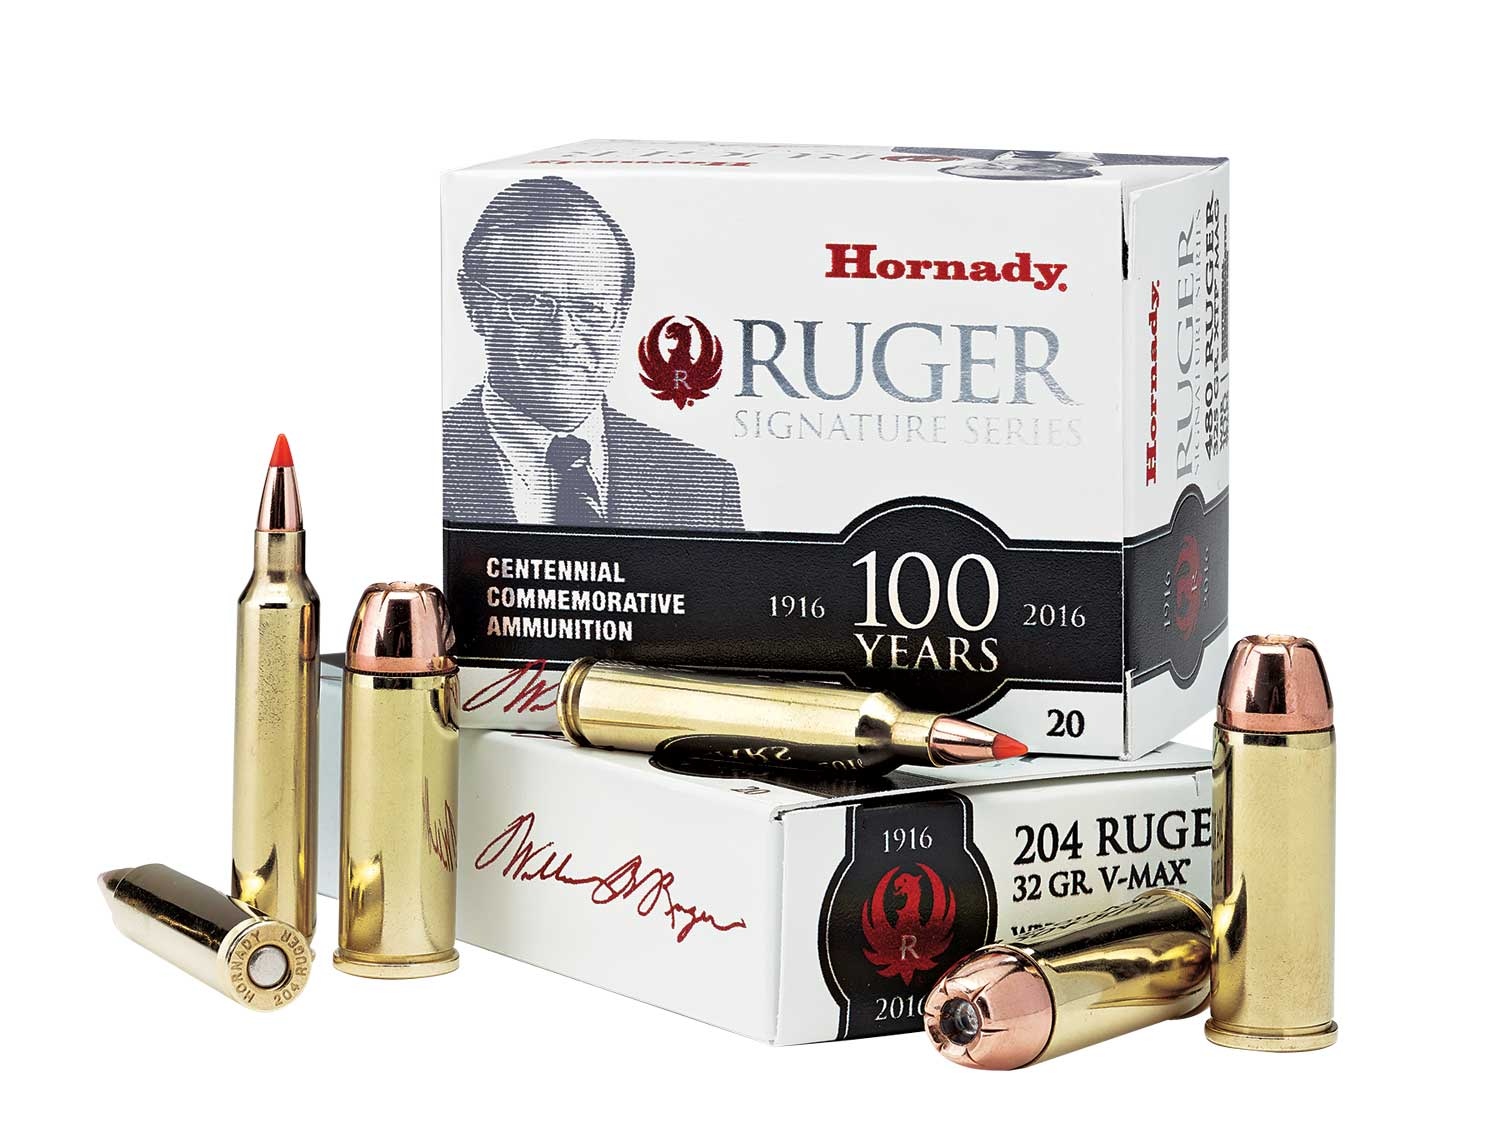 Hornady Ruger .204 Commemorative ammunition box